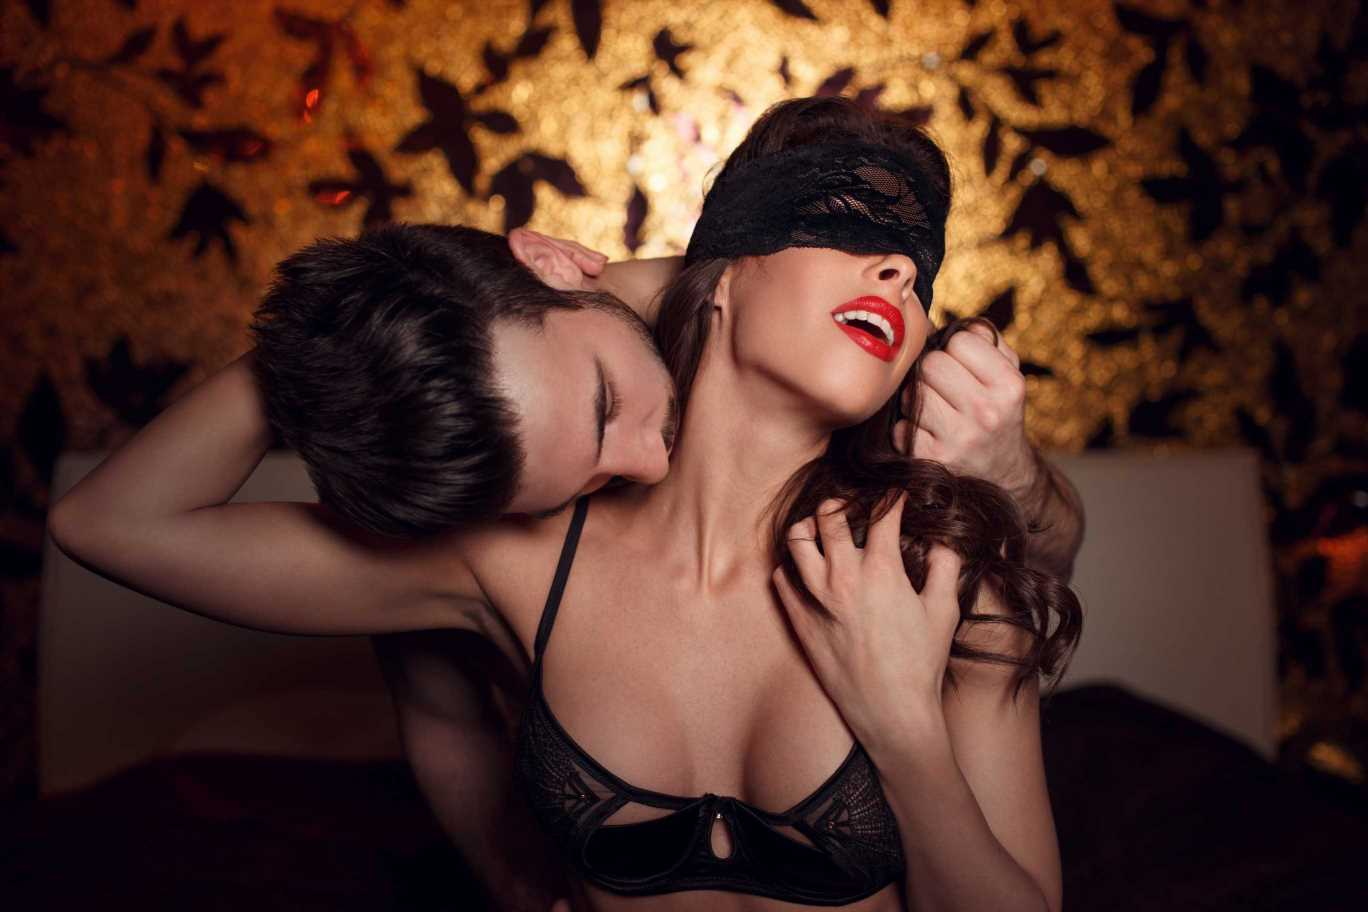 I enjoy submissive sex with my married lover but fear he is seeing men too – The Sun